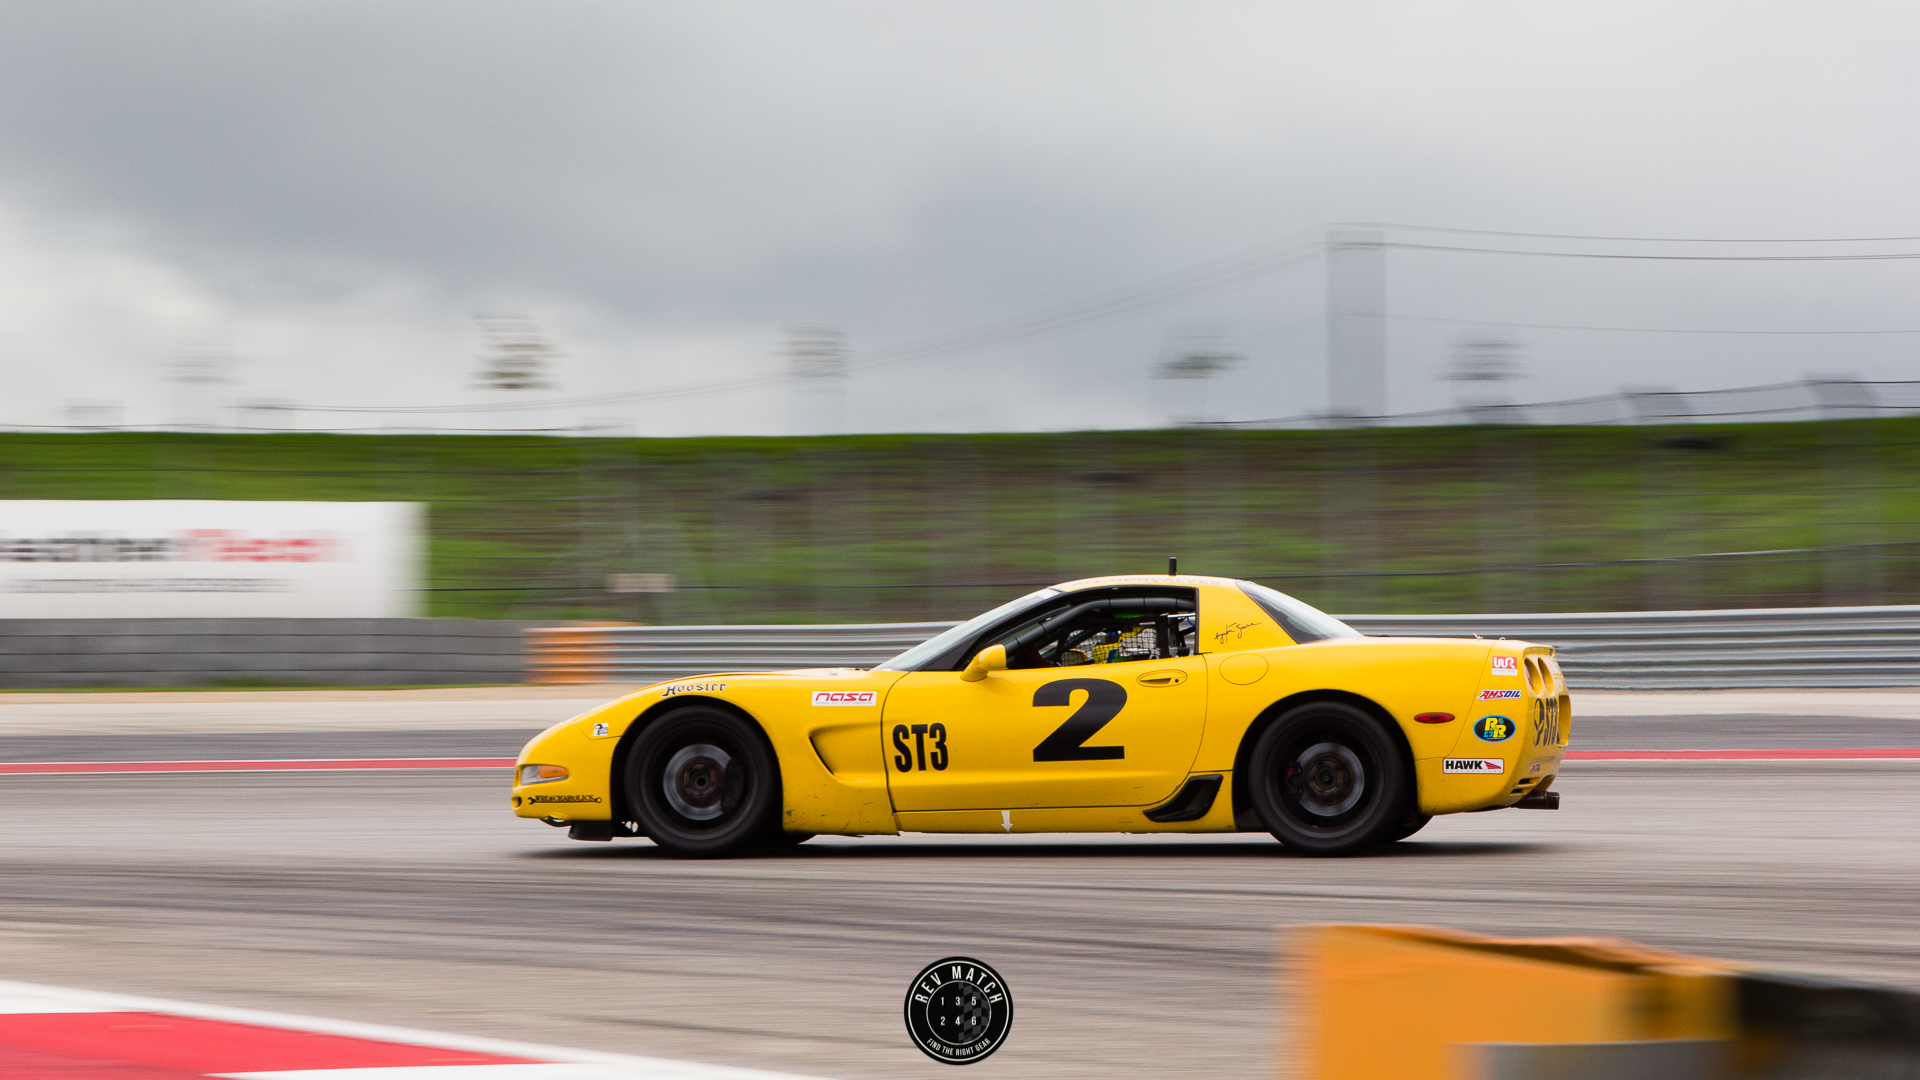 RMM x NASA at COTA 2018-133.jpg